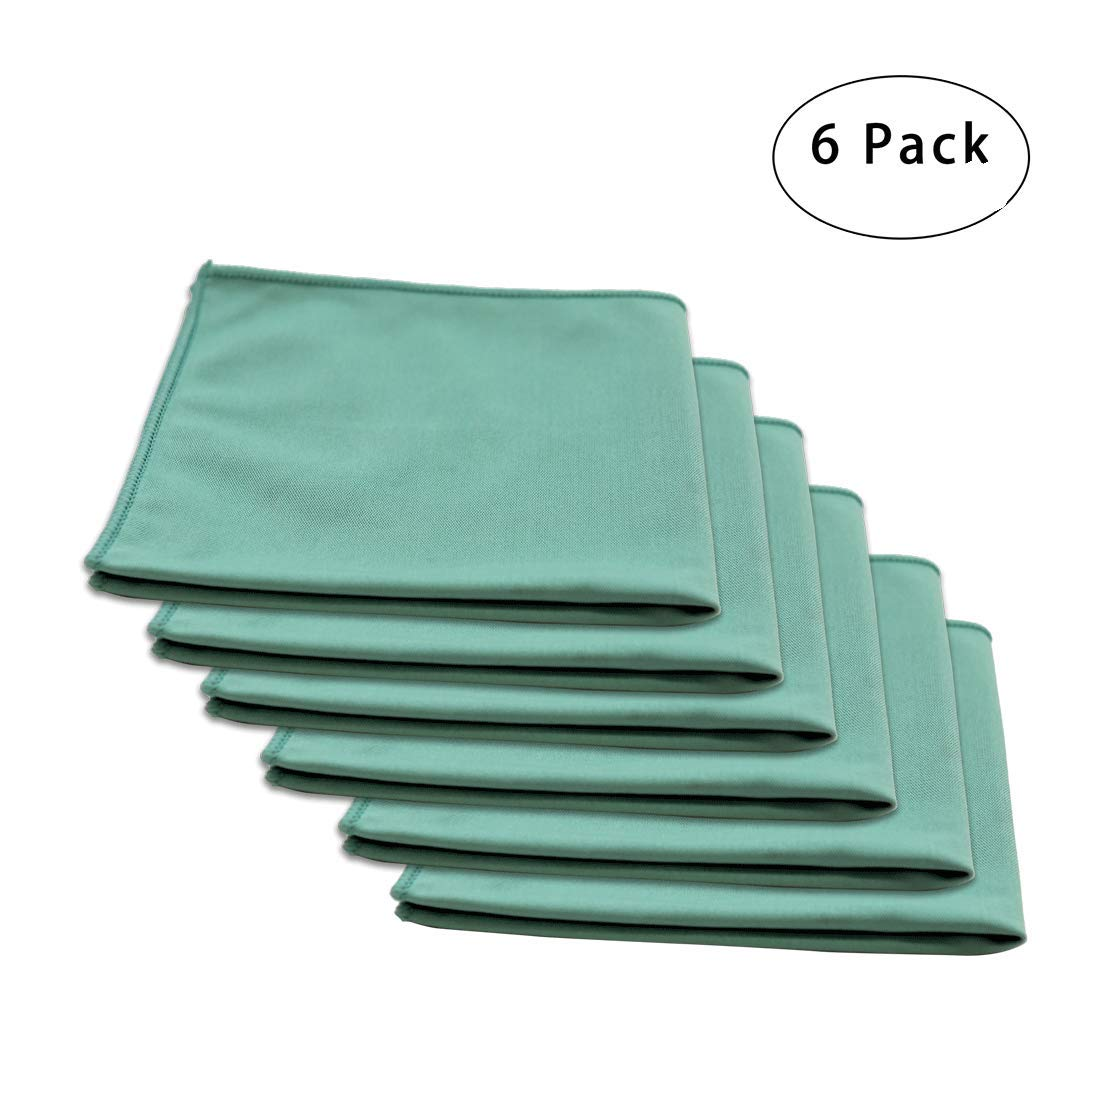 Carcarez 16 in. x 16 in. Premium Window, Glass, Mirror & Chrome Professional Microfiber LINT-FREE, STREAK-FREE Detailing Towels, Pack of 6 (green)